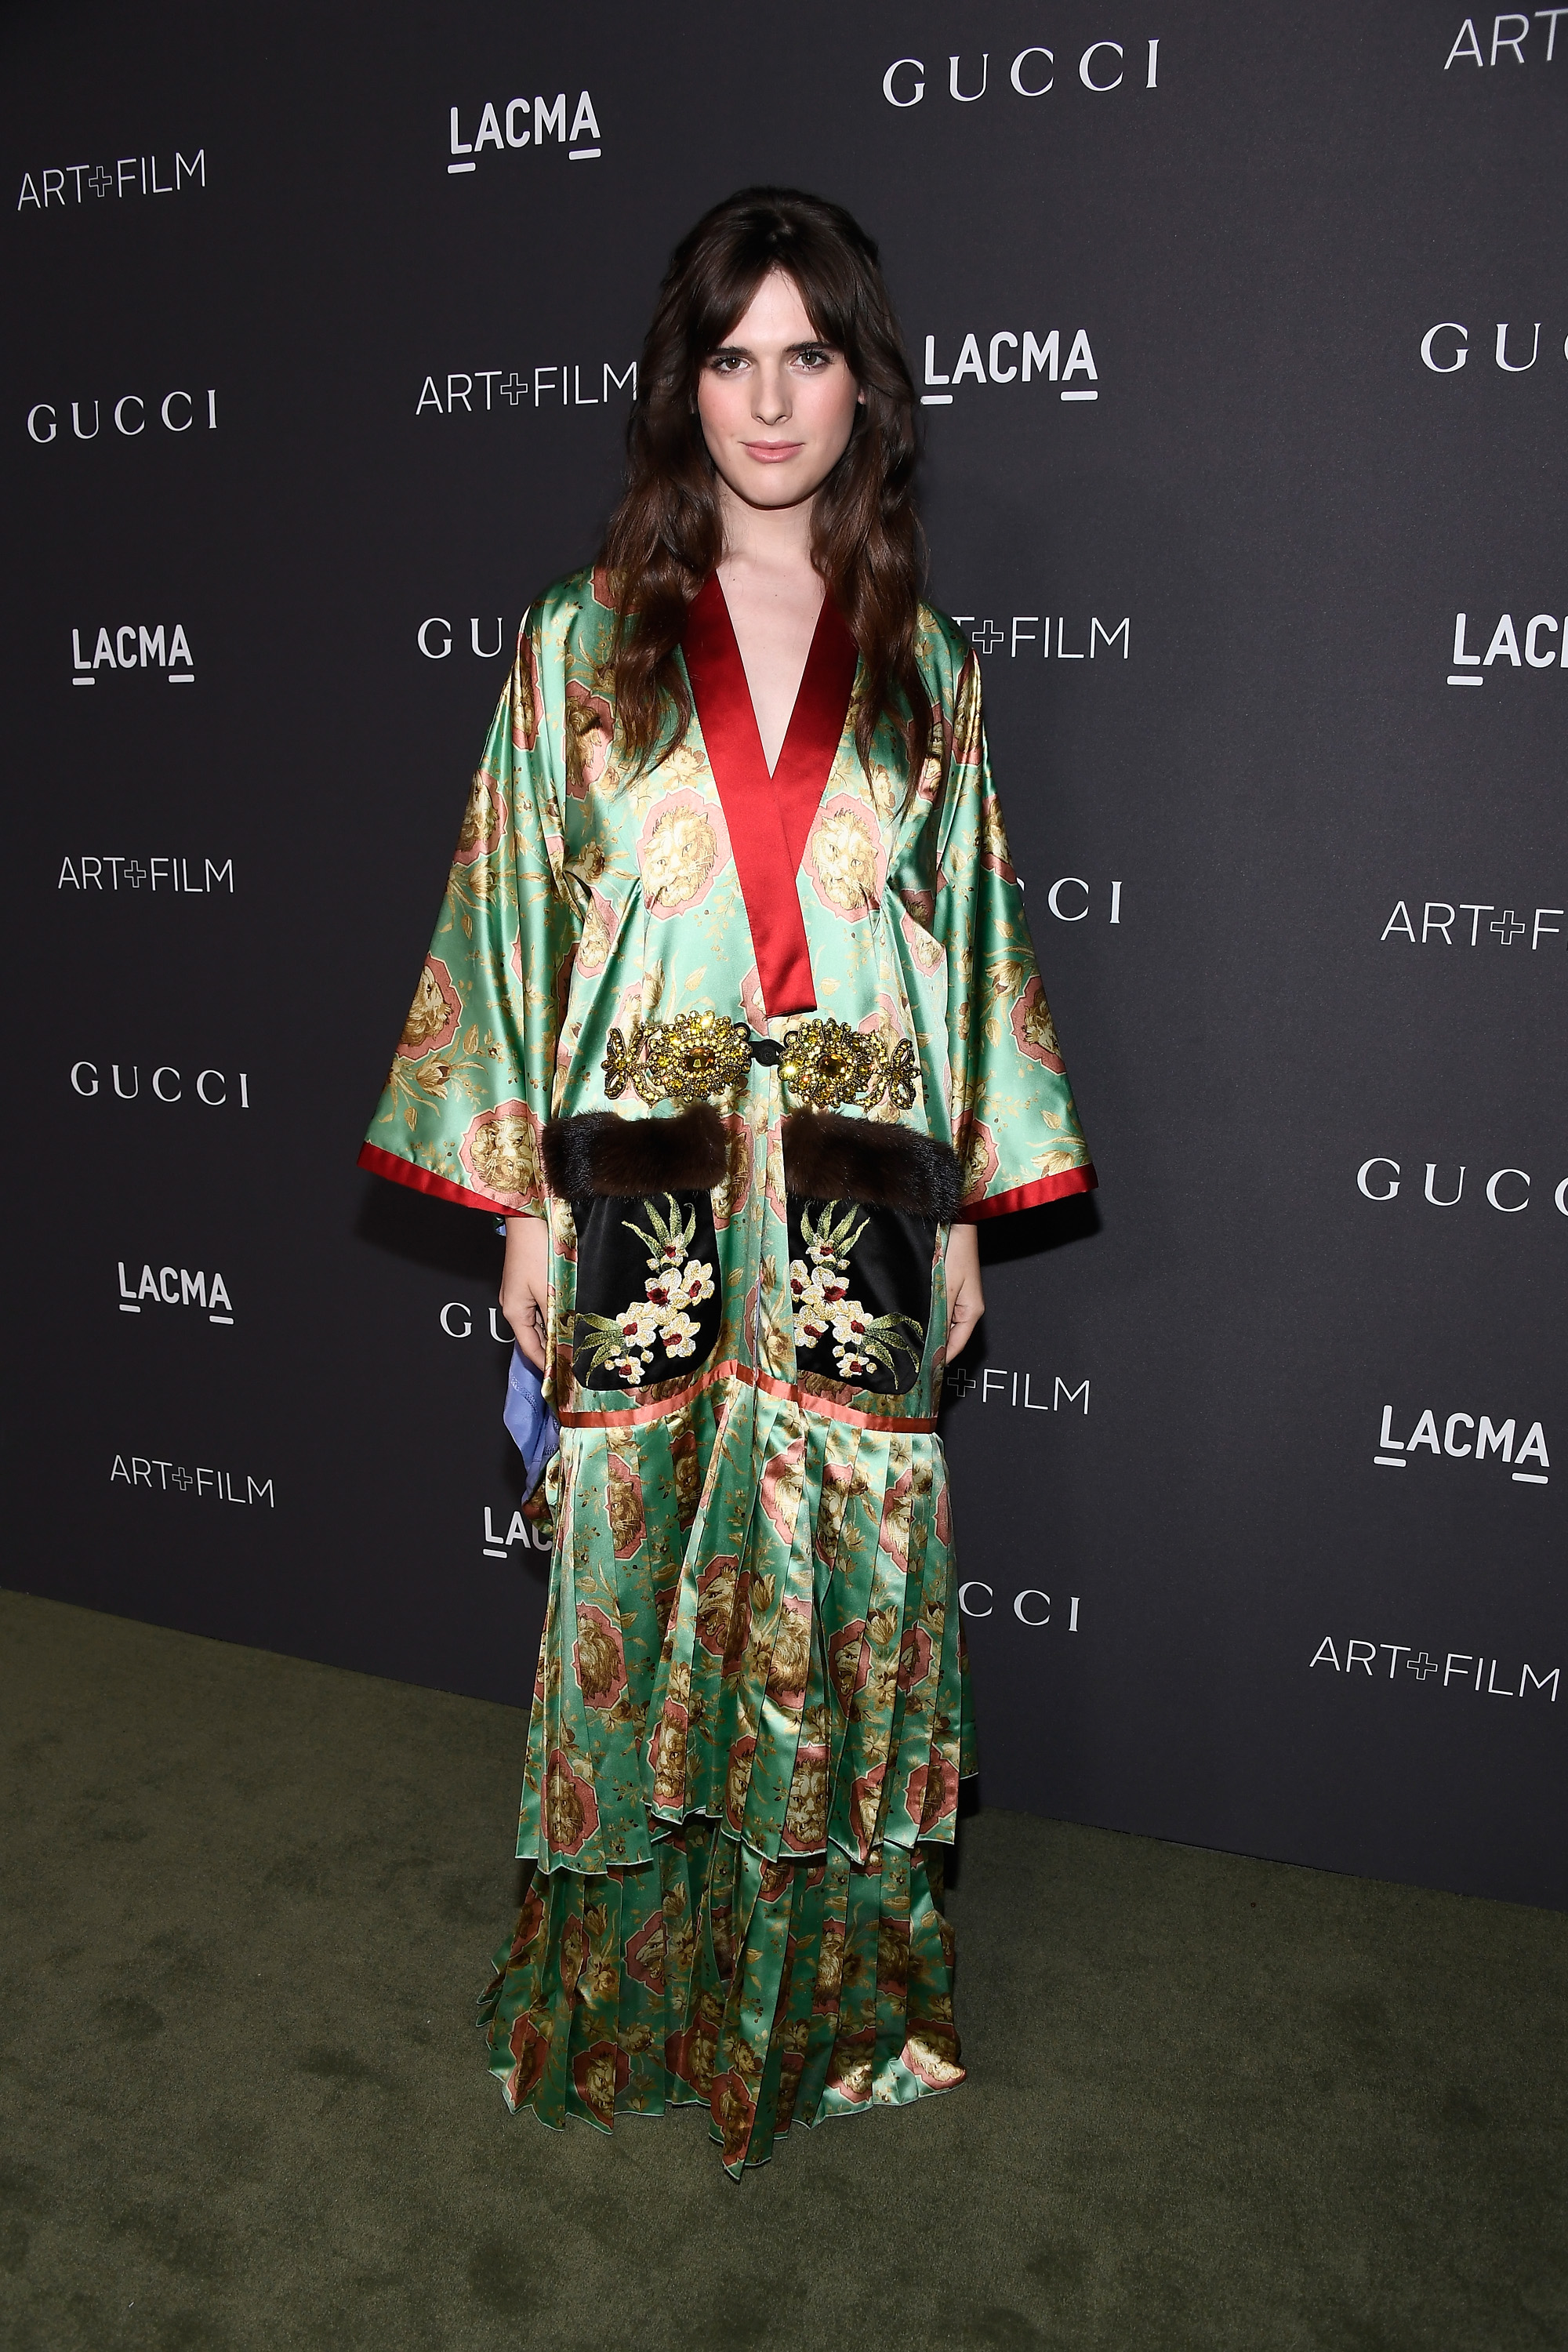 LOS ANGELES, CA - OCTOBER 29:  Actress/model Hari Nef, wearing Gucci, attends the 2016 LACMA Art + Film Gala honoring Robert Irwin and Kathryn Bigelow presented by Gucci at LACMA on October 29, 2016 in Los Angeles, California.  (Photo by Frazer Harrison/Getty Images for LACMA)